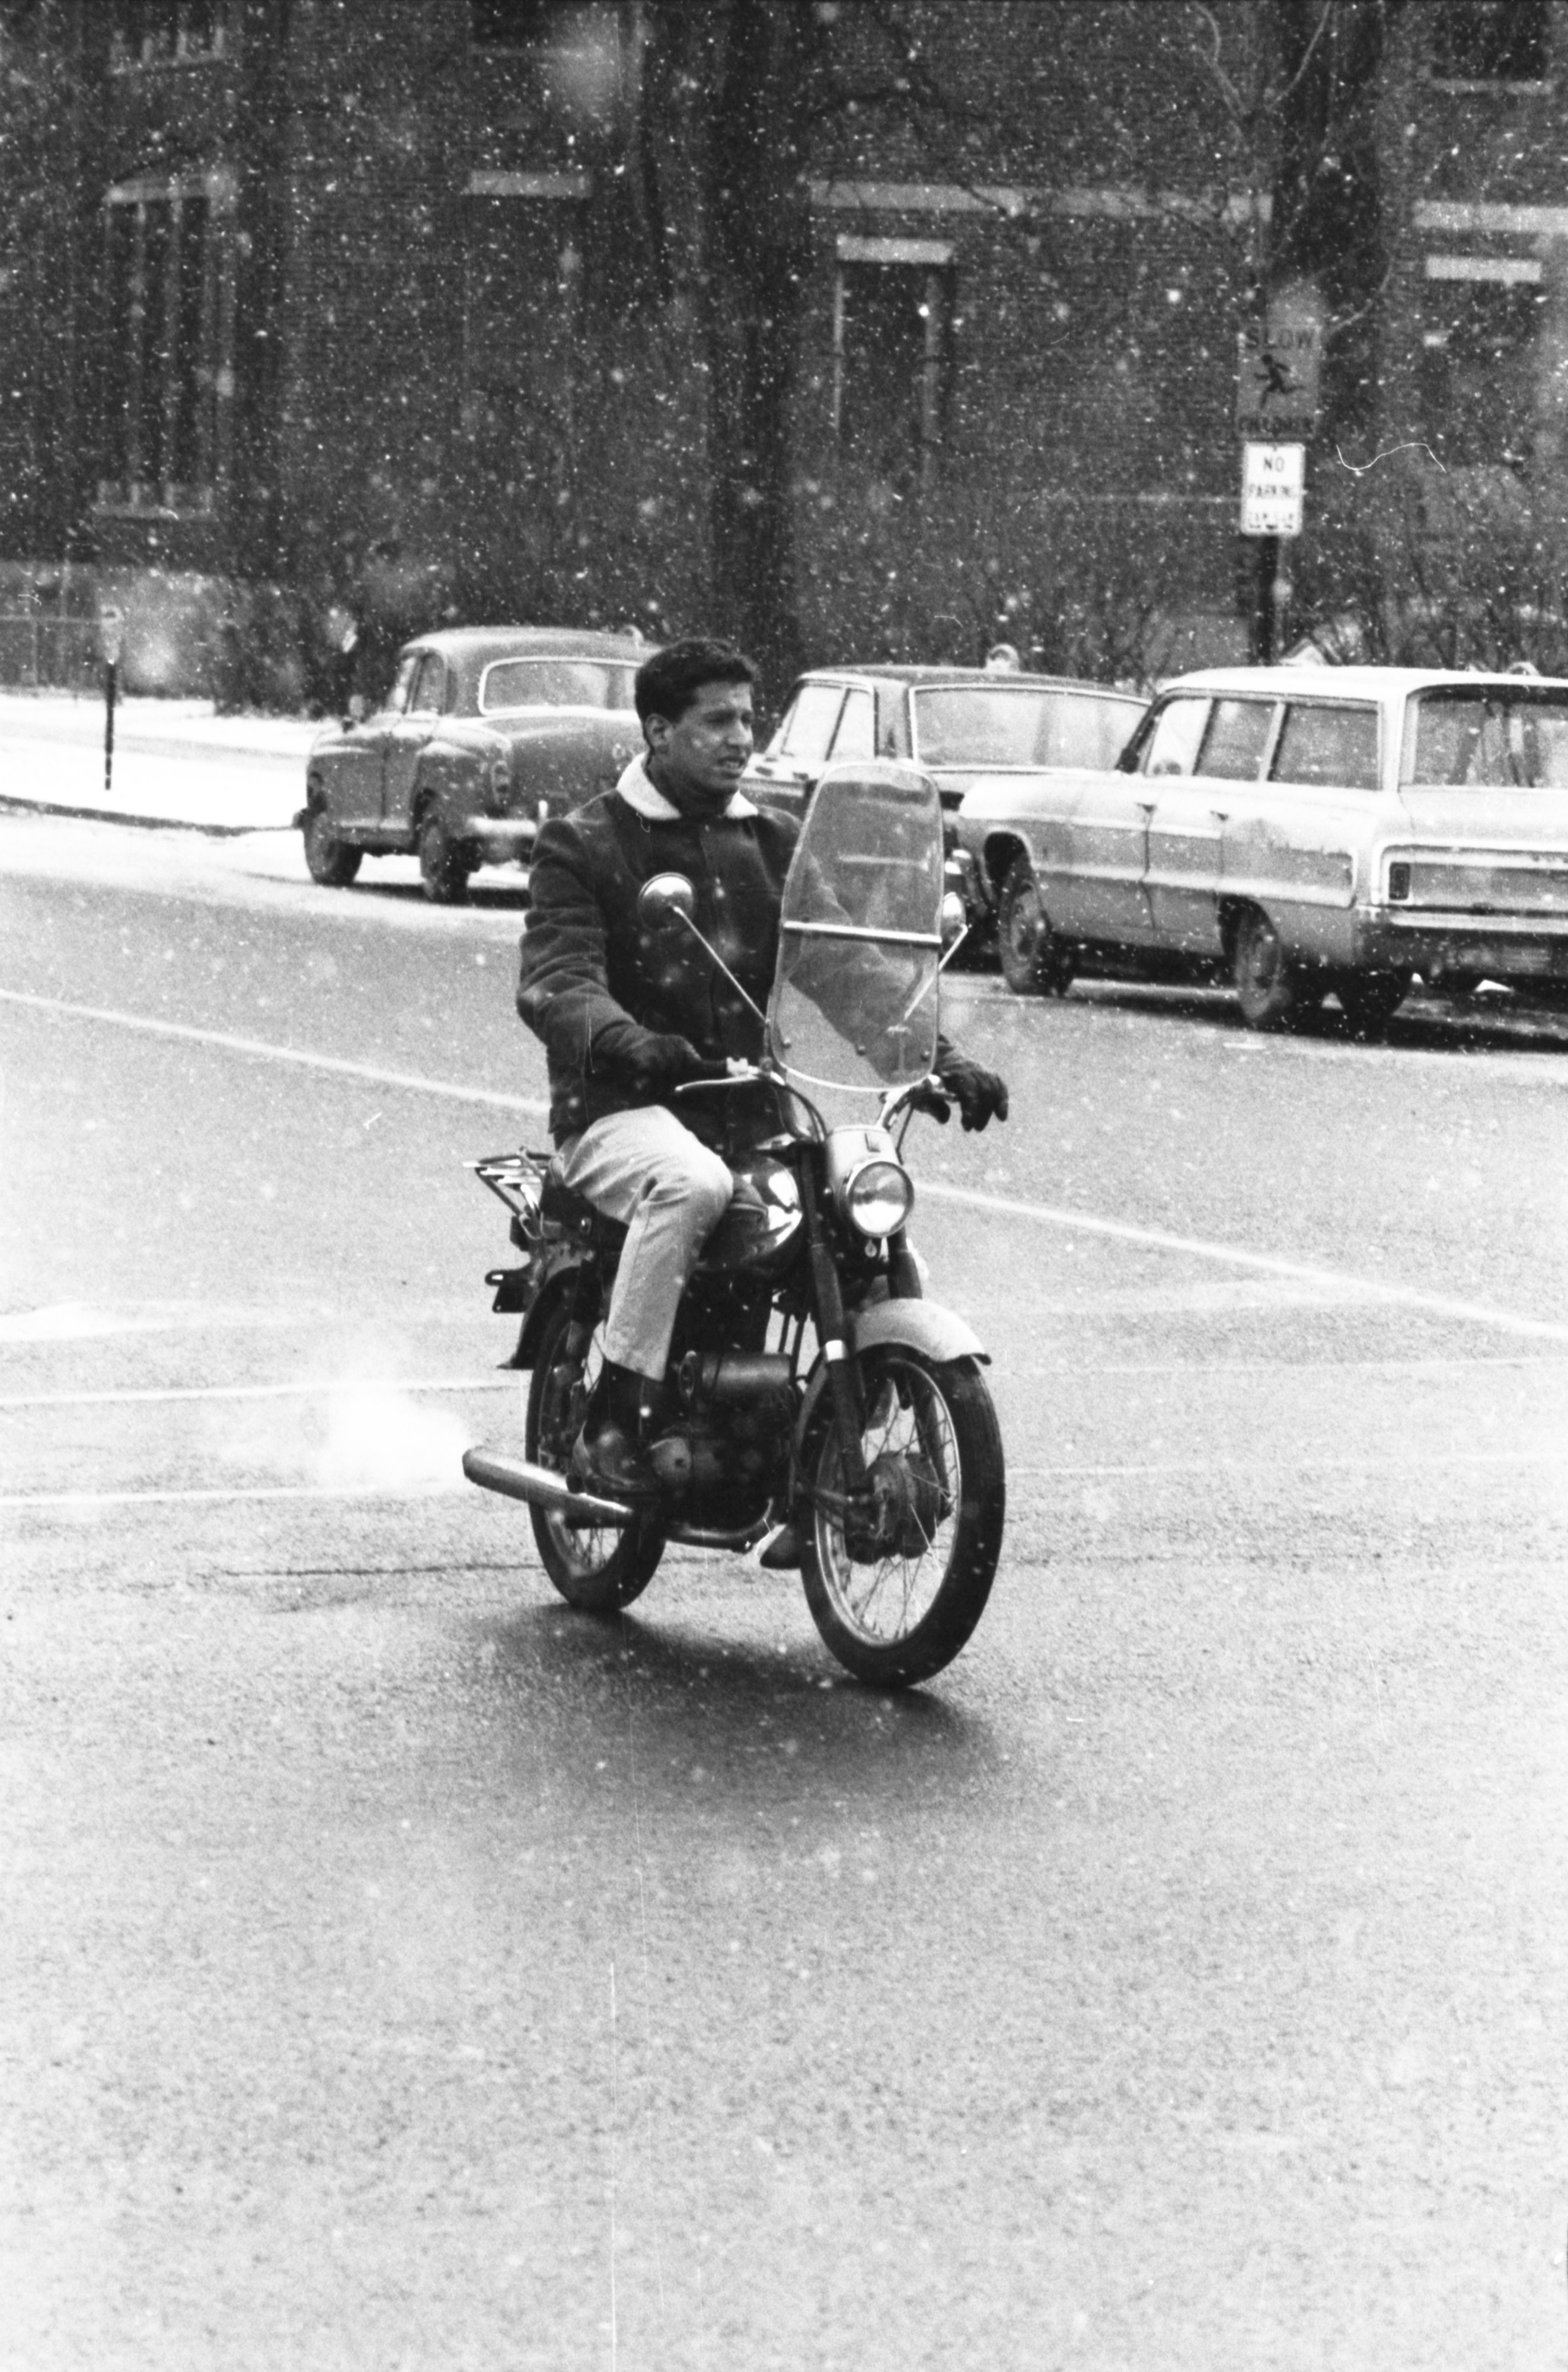 Motorcyclist On A Snowy Afternoon, January 1966 image